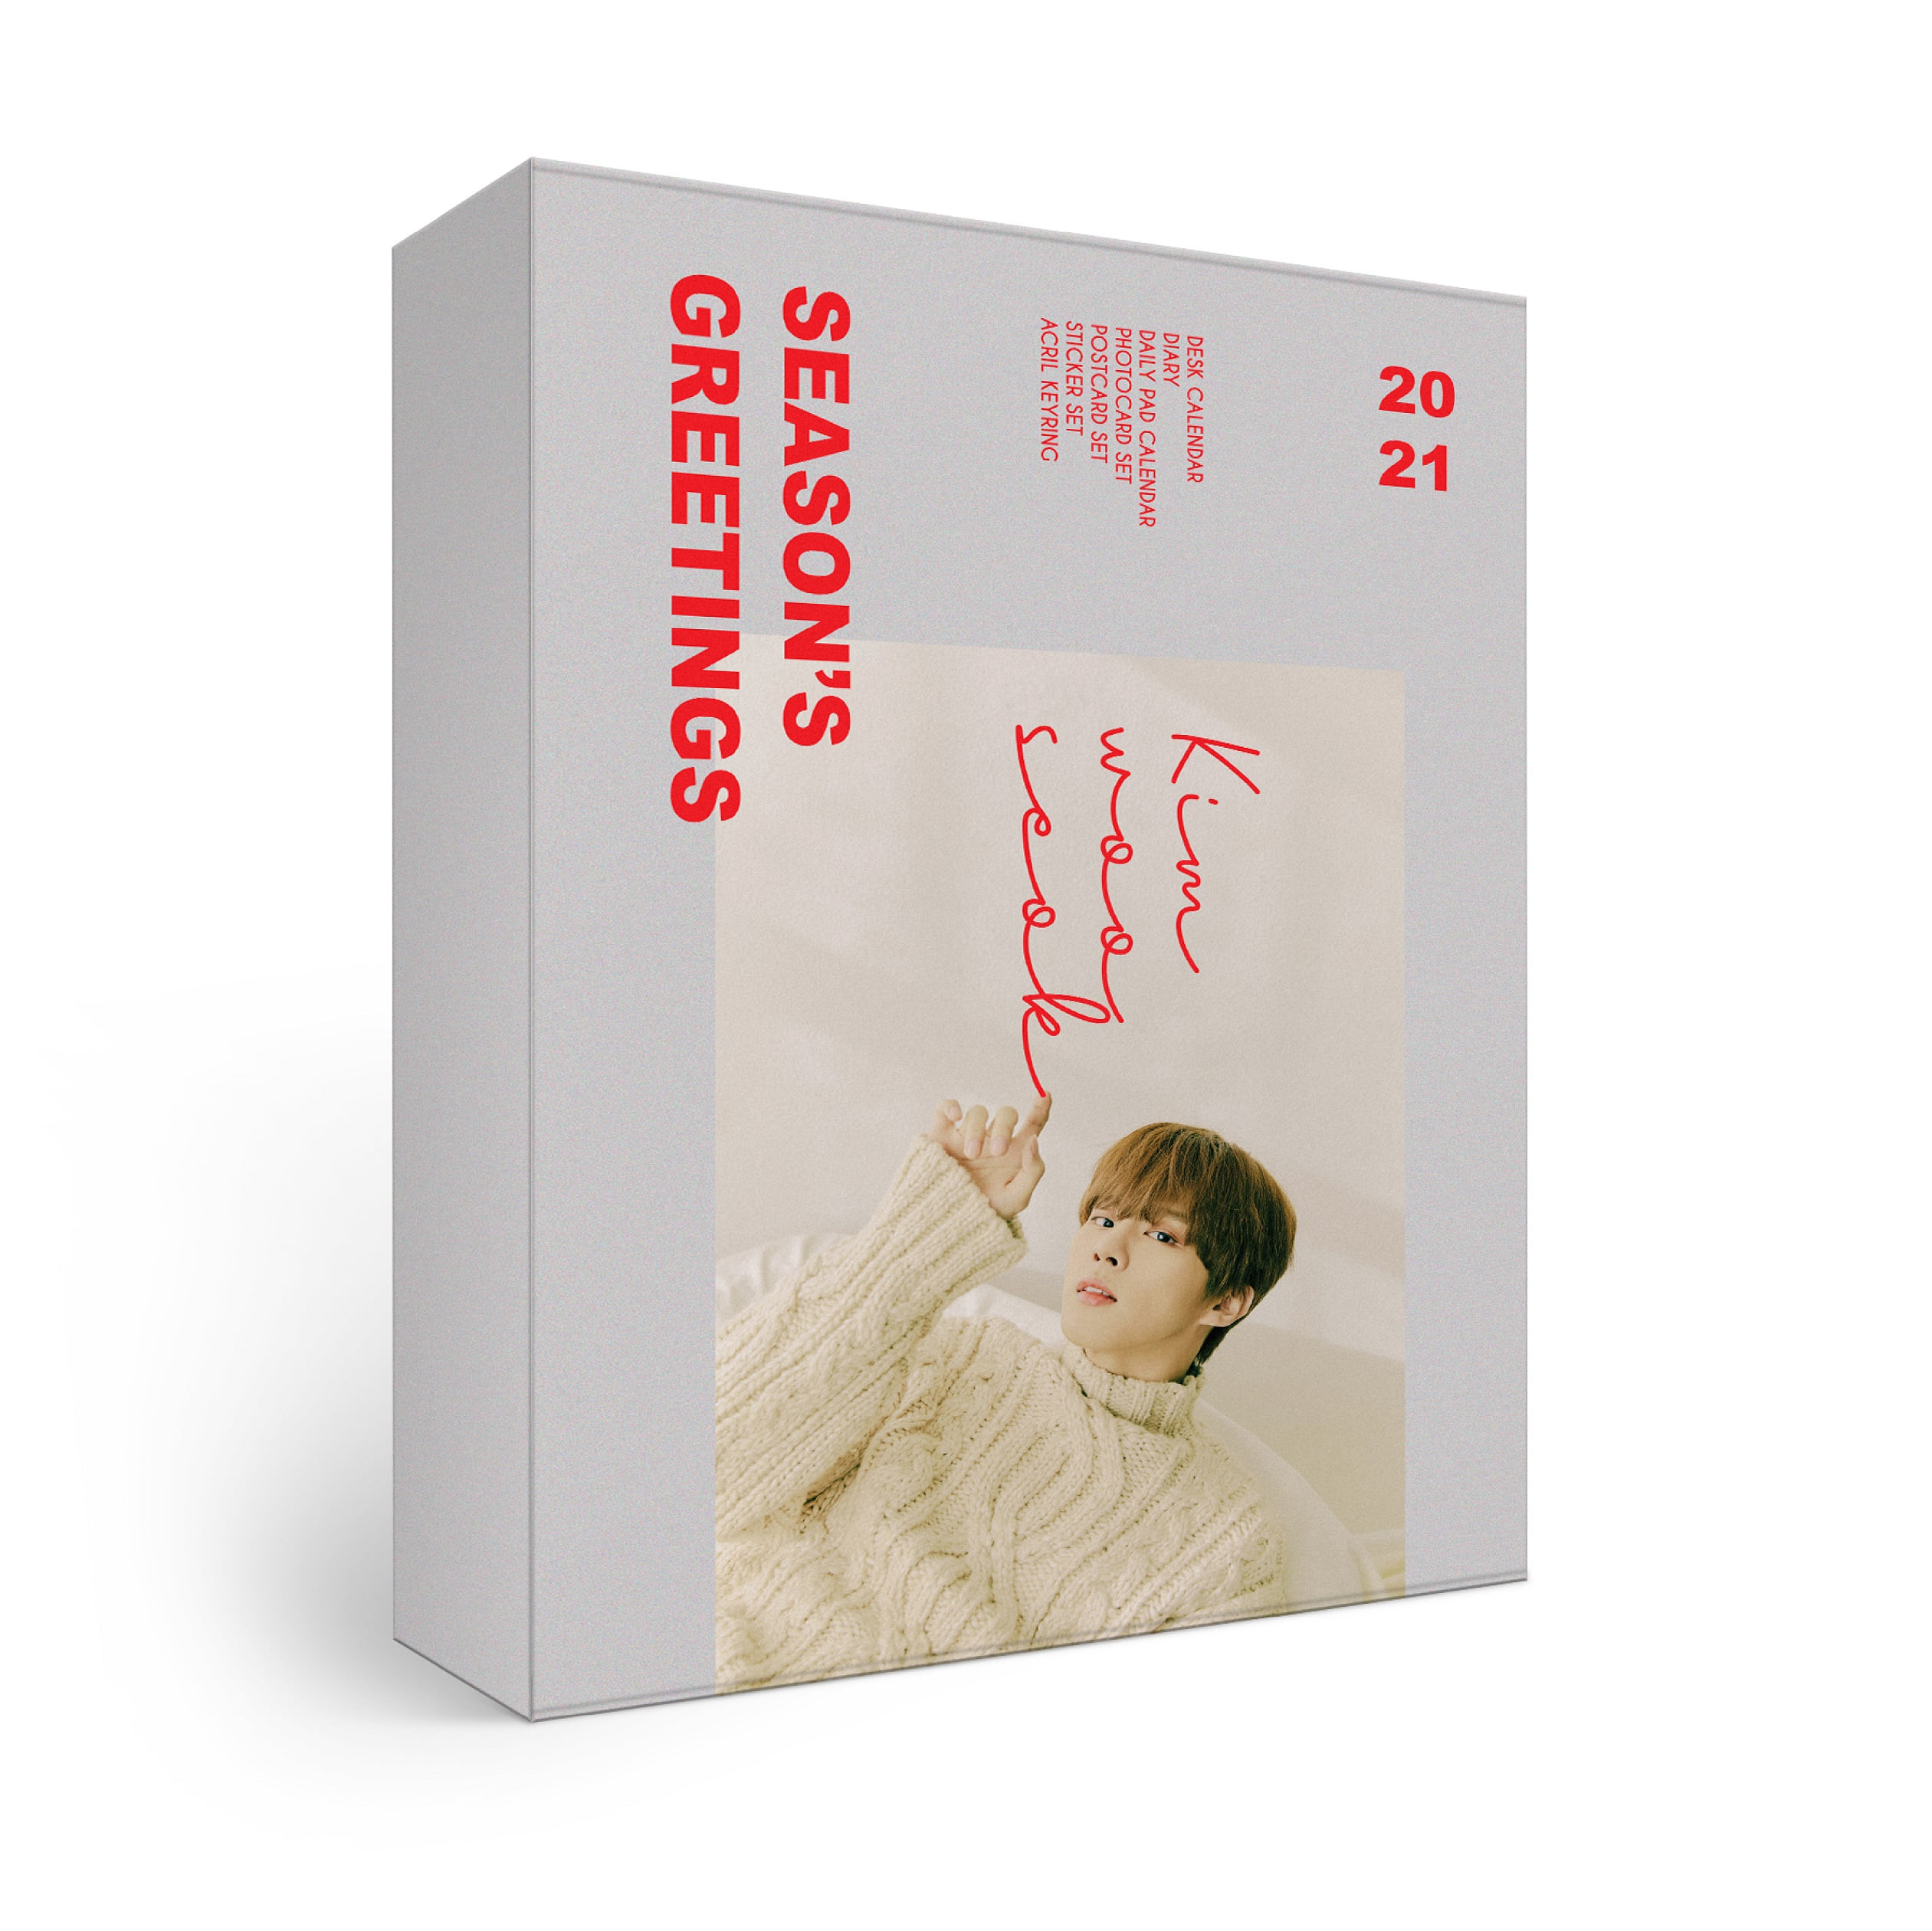 [PRE-ORDER] ★Provides KPOPSTORE Special Gift★ 金宇硕(KIM WOO SEOK) - 2021 SEASON'S GREETINGS (*No Poster)케이팝스토어(kpop store)